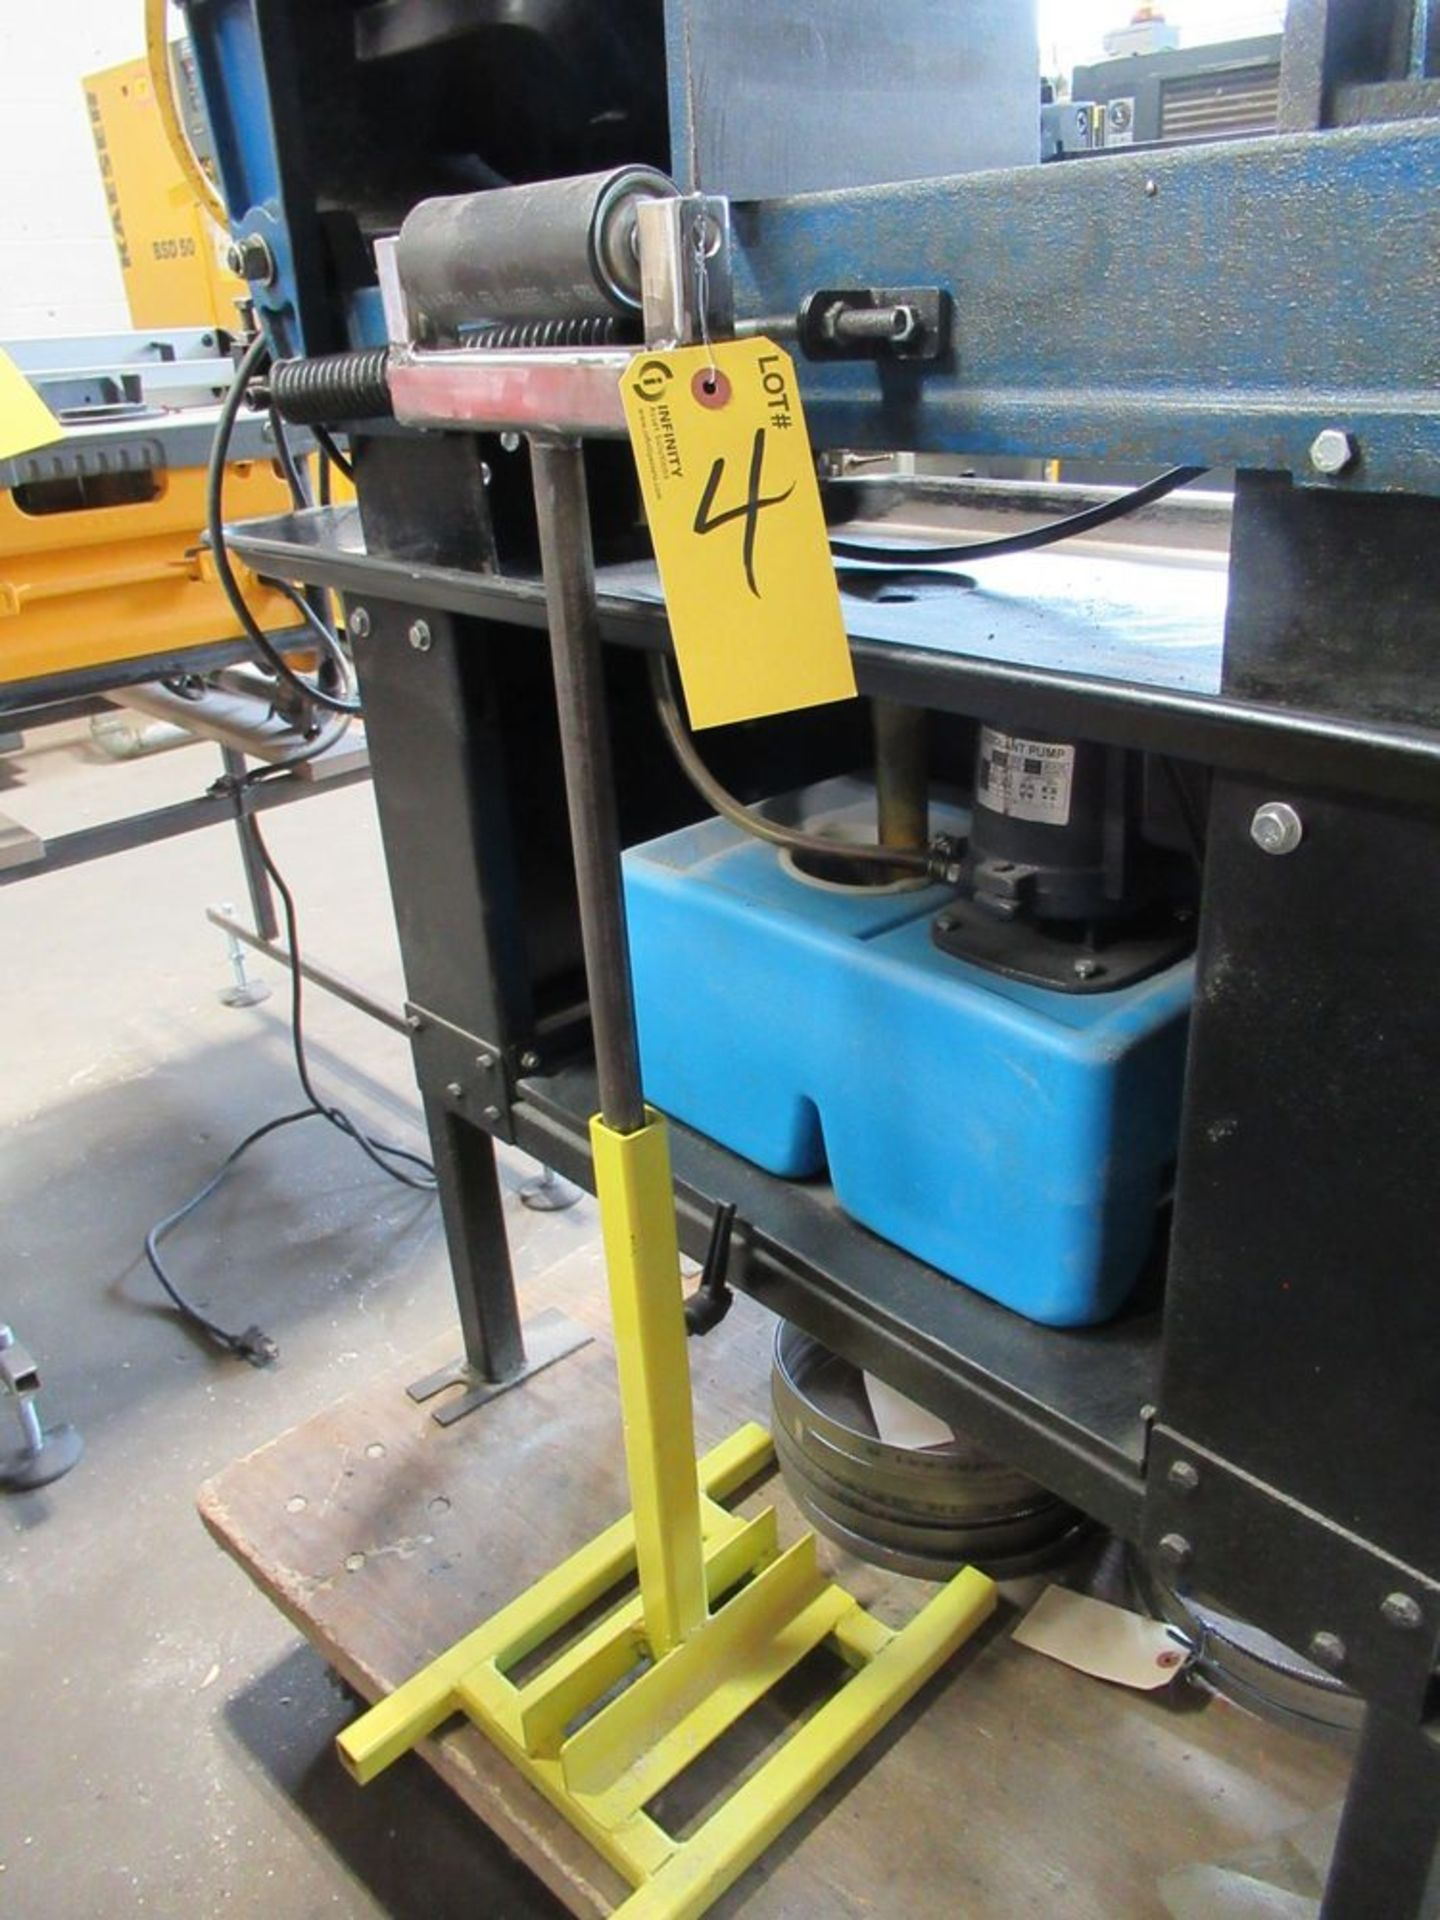 """JET JHVG-712 7"""" X 12"""" 3-SPEED HORIZONTAL BANDSAW W/ SAW BLADES AND ROLLER STAND, S/N 14071991 - Image 4 of 5"""